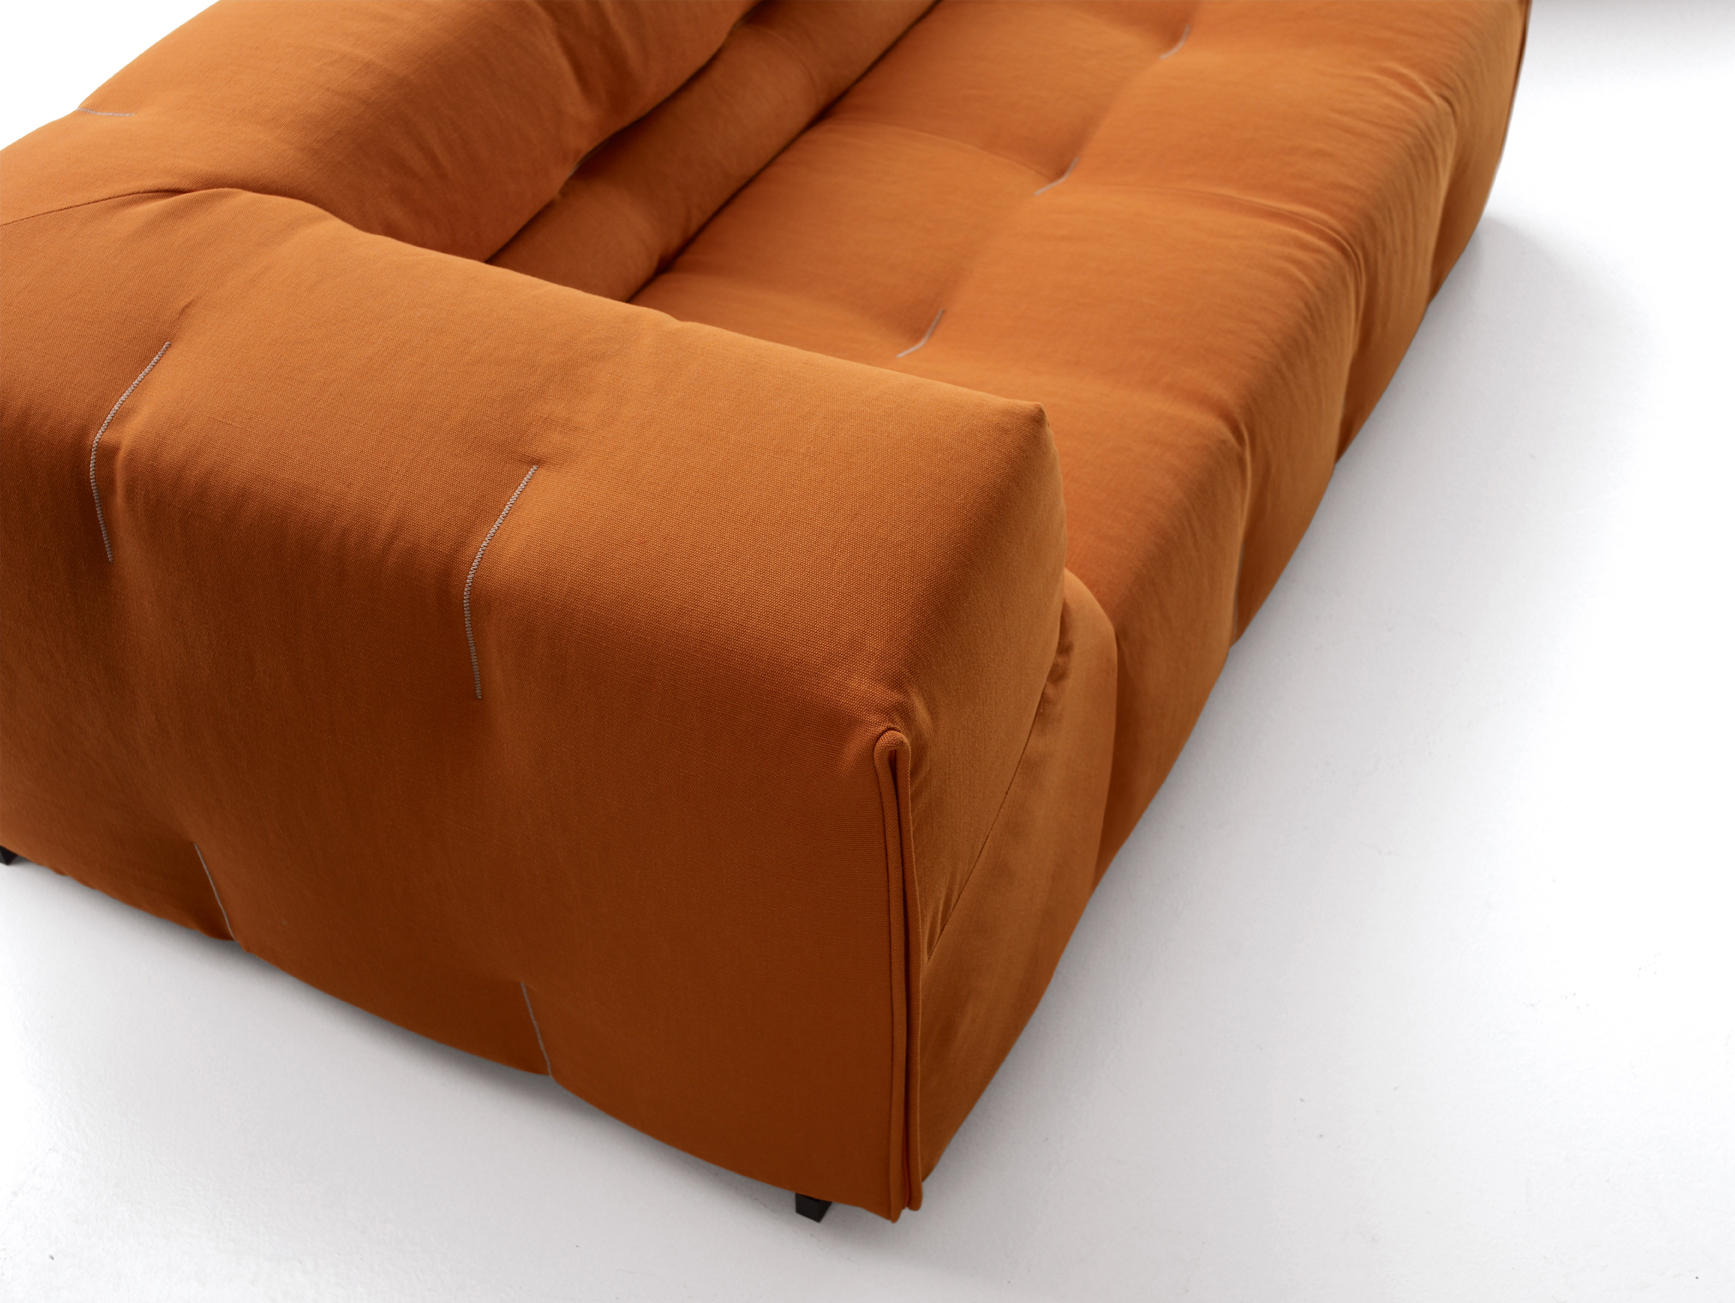 Tufty too sofas from b b italia architonic for B b italia novedrate